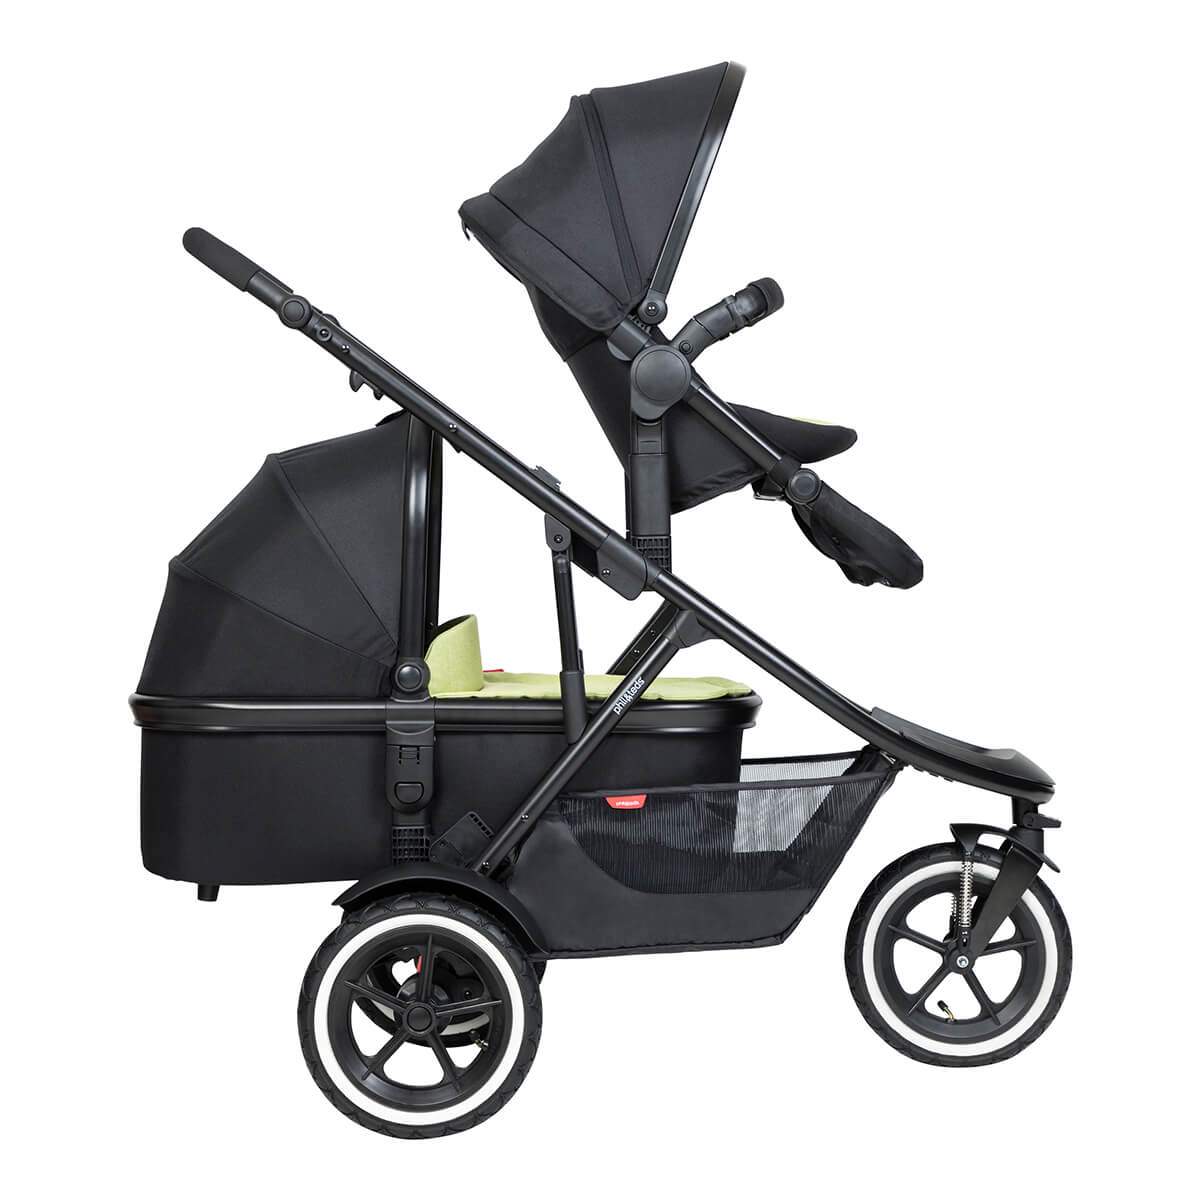 https://cdn.accentuate.io/4509902471245/19466204250306/philteds-sport-buggy-with-double-kit-extended-clip-and-snug-carrycot-side-view-v1626485431838.jpg?1200x1200